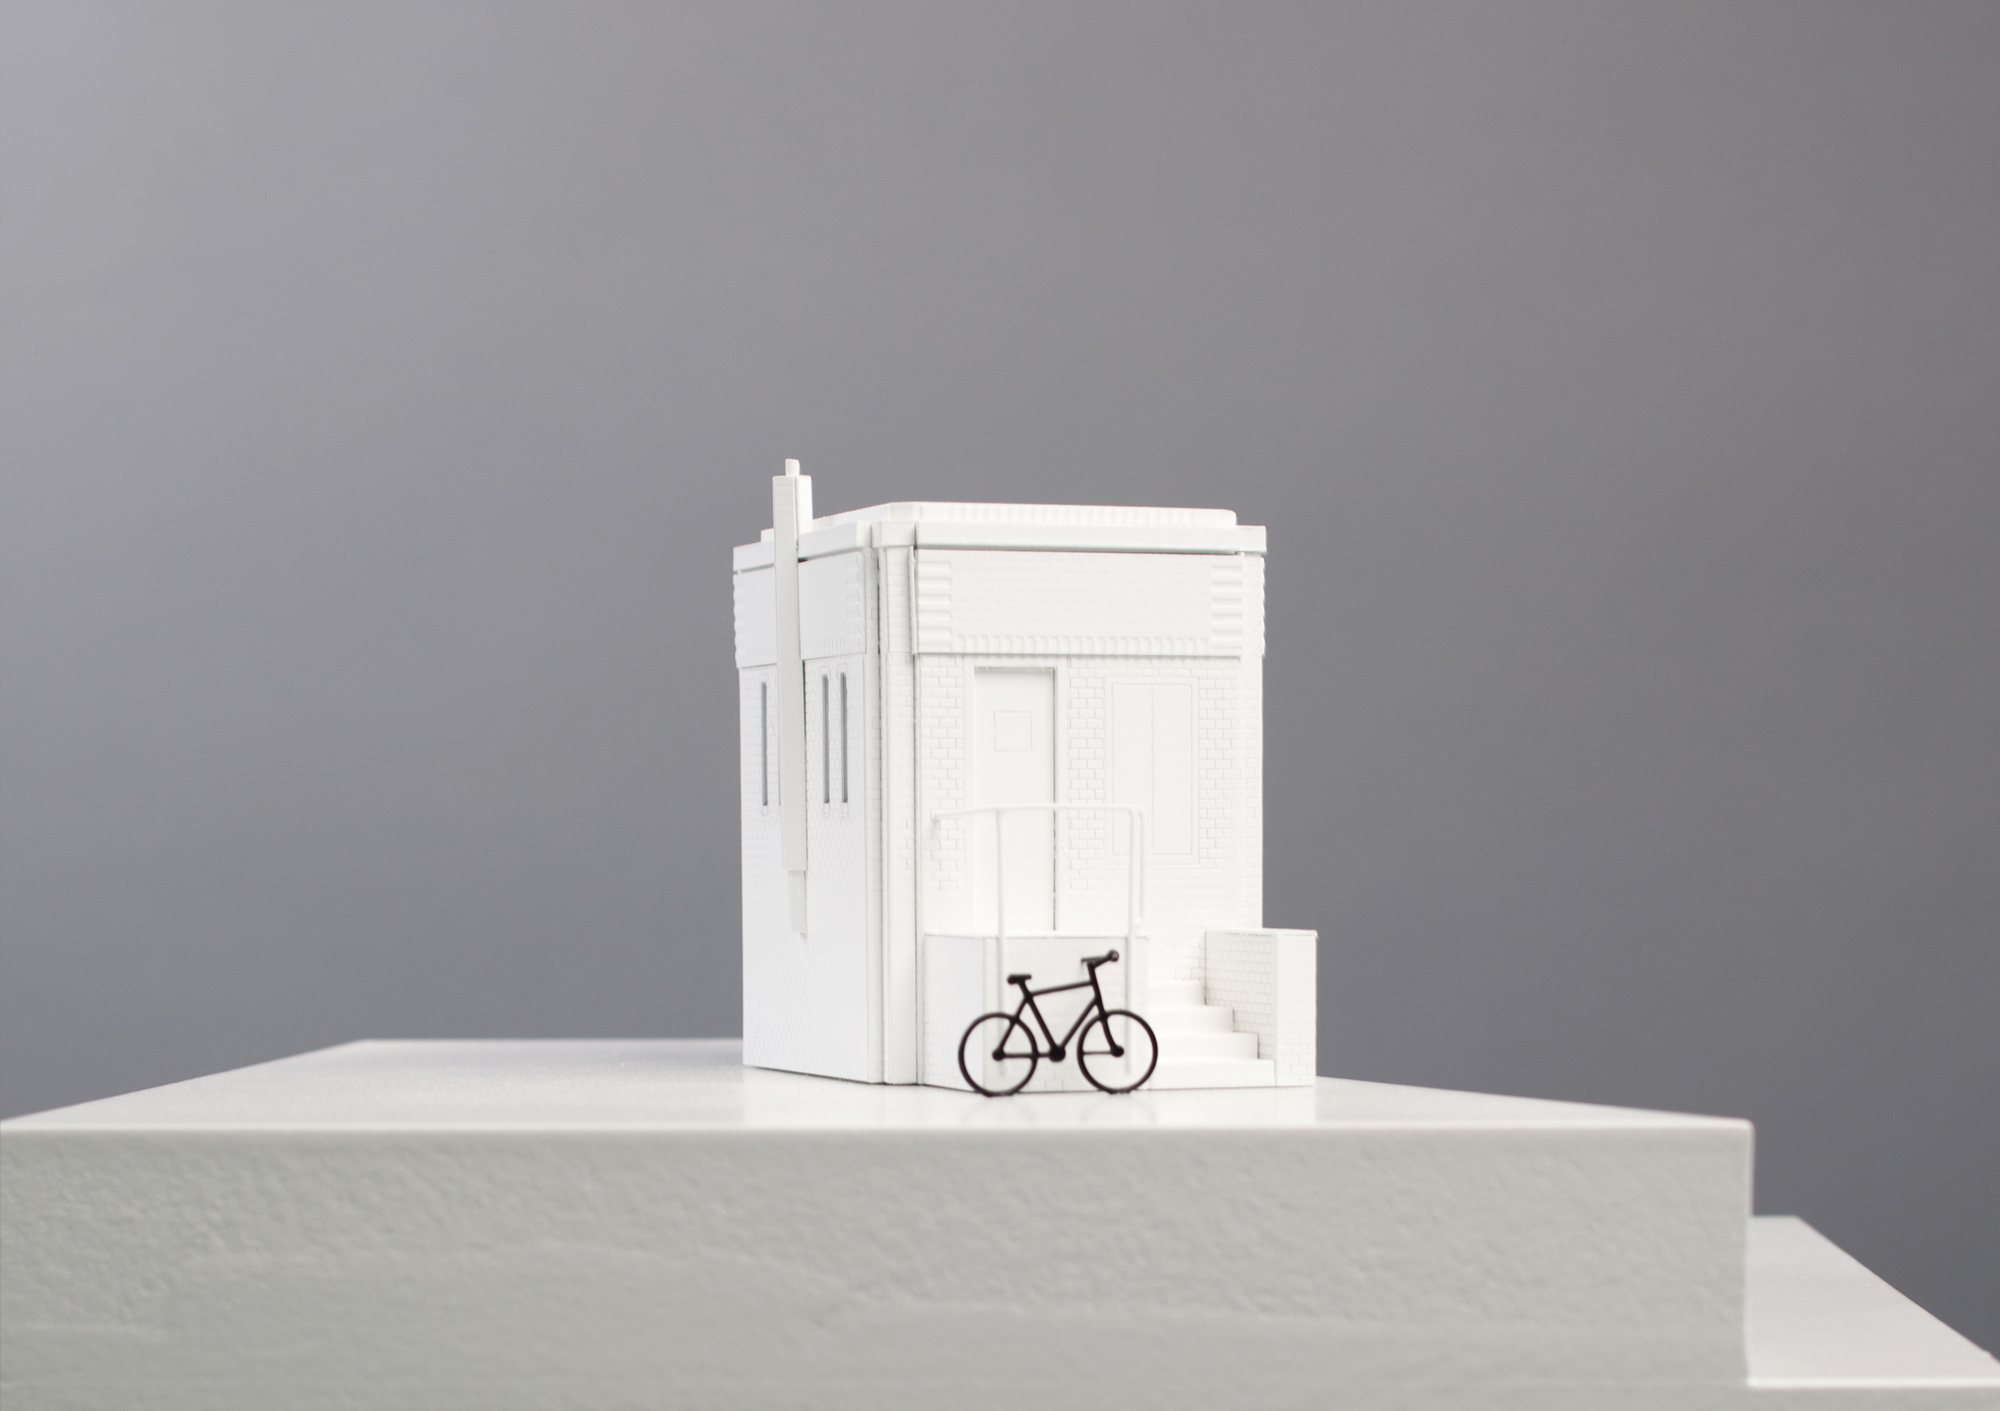 sweets_maquette_002.jpg